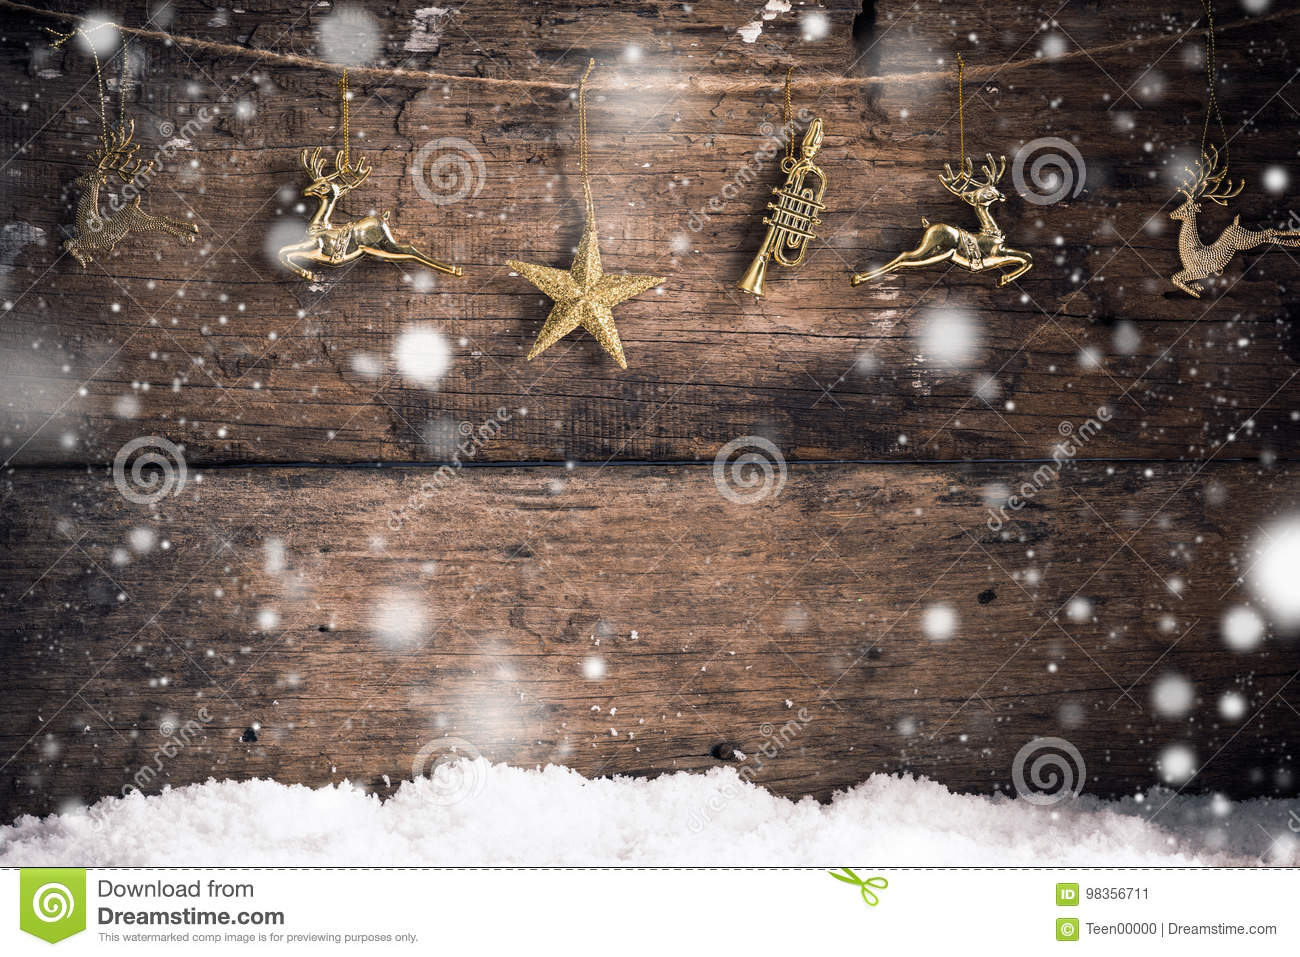 Download Old Wood Texture Gold Star , Gold Reindeer And Decoration  With Snow Flakes Christmas Background Stock Image - Image of celebration, greeting: 98356711